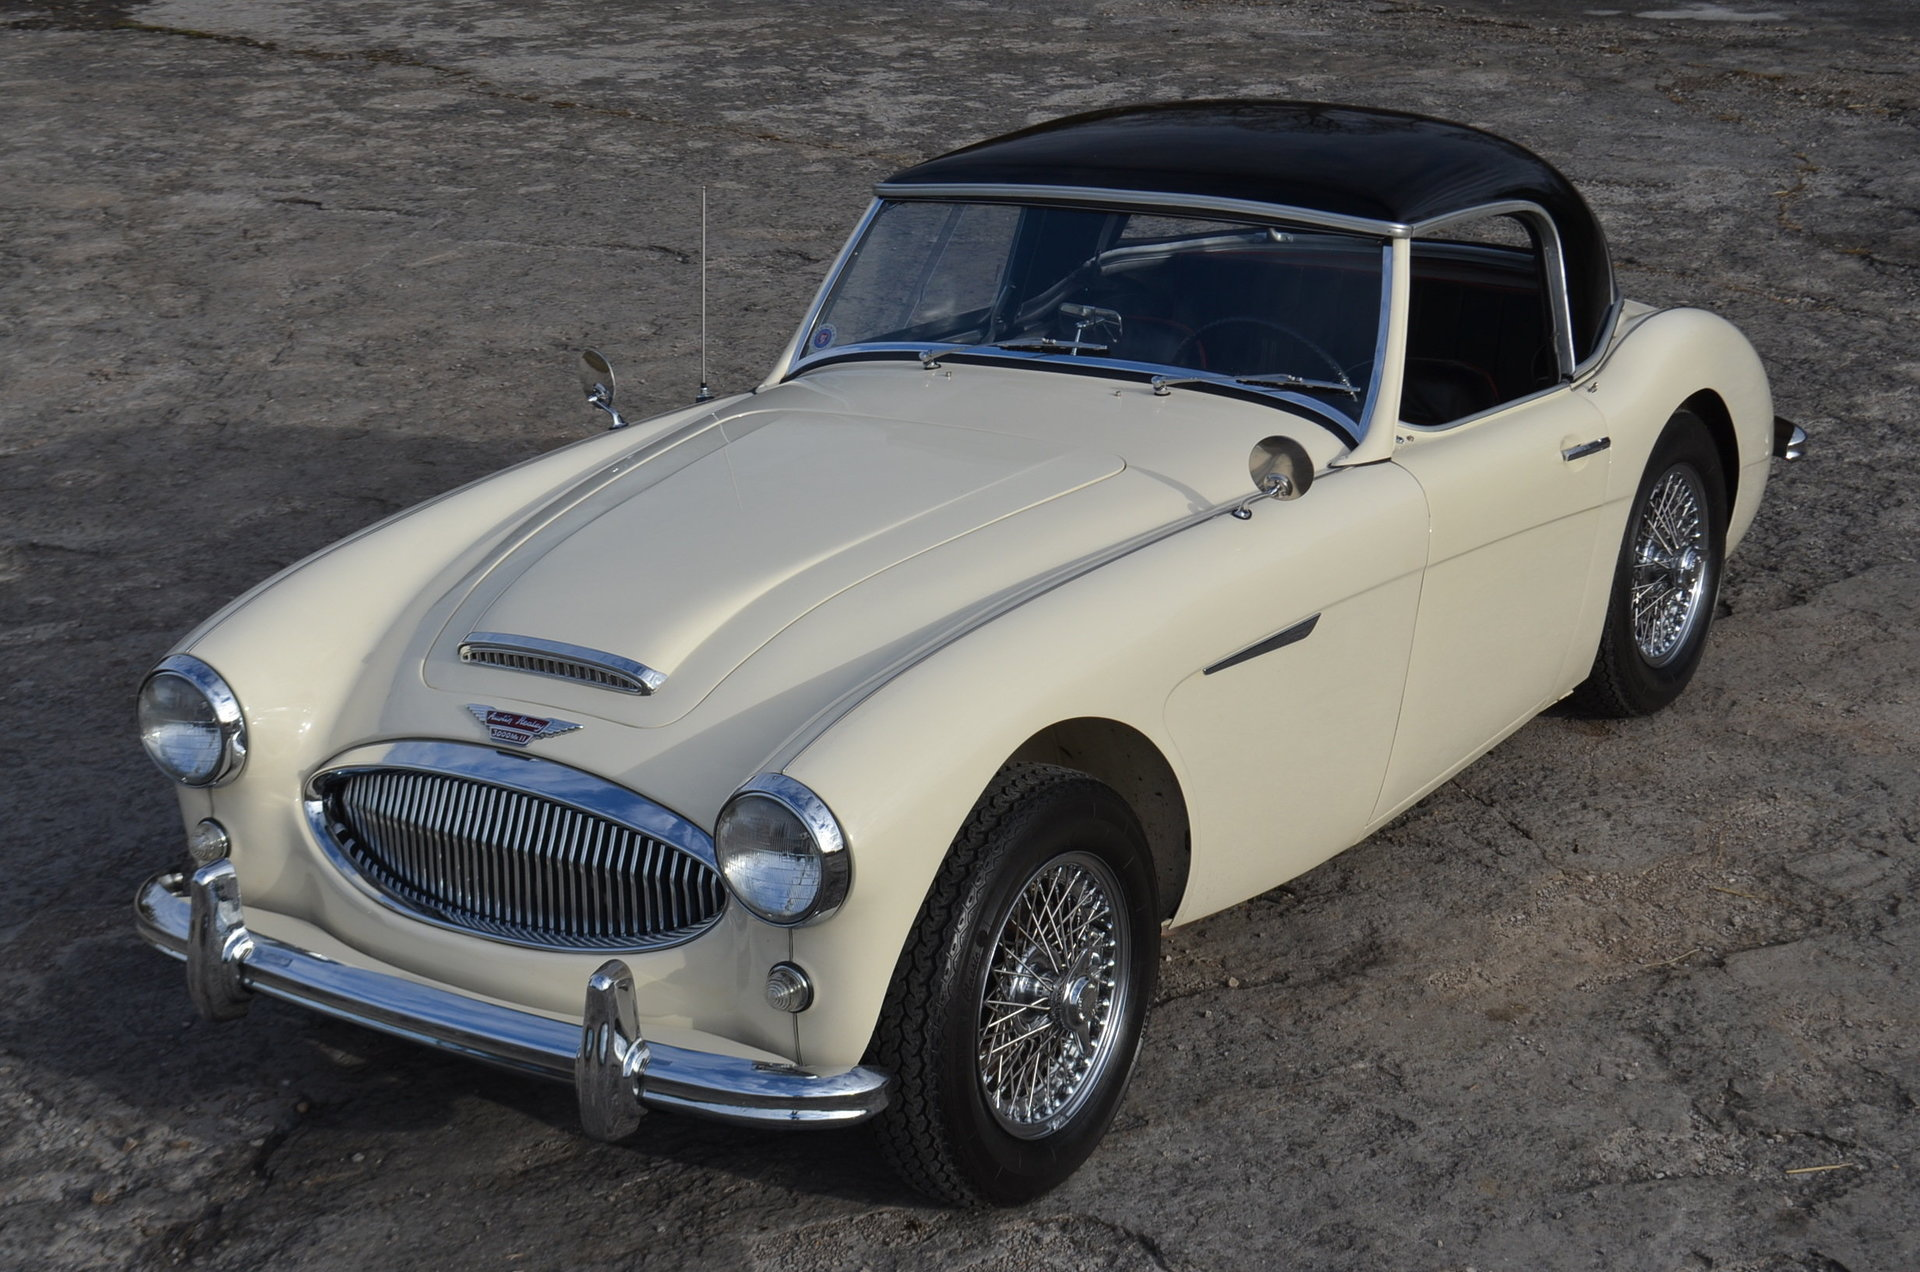 1962 Austin-Healey 3000 for sale #76957 | MCG